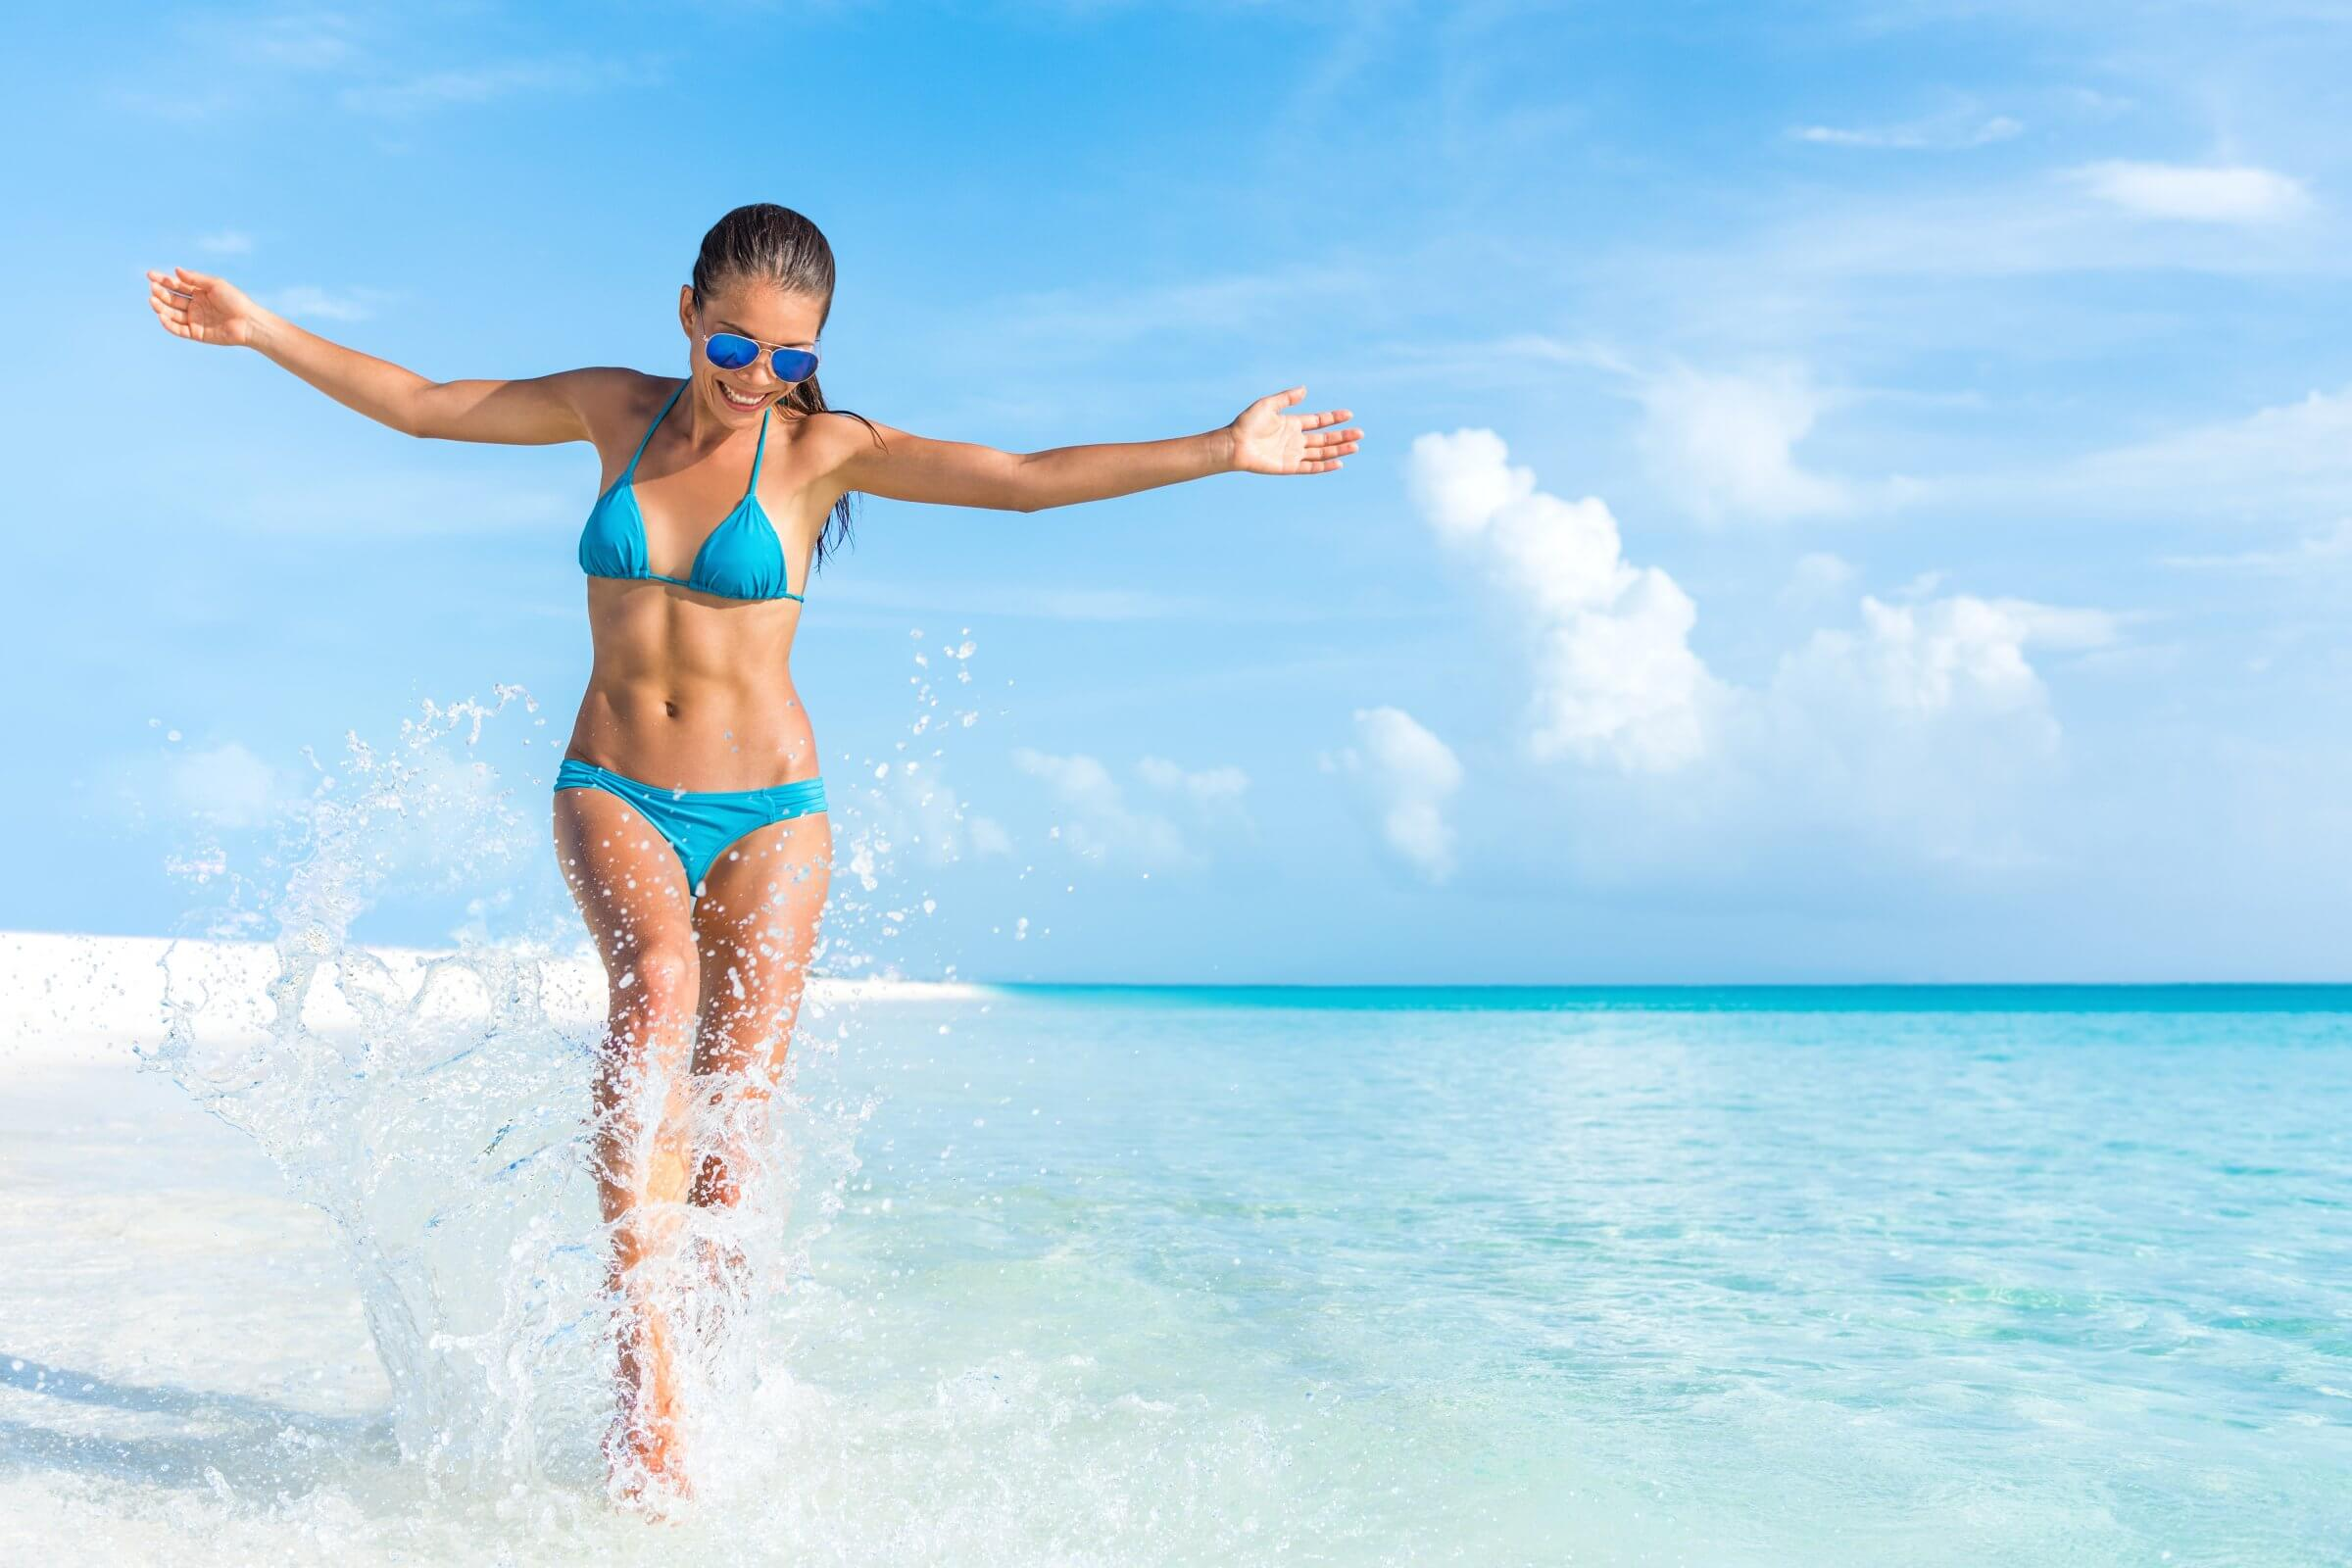 Feminine Rejuvenation Treatments include the O-Shot and V-Lase - Body Rejuvenation Treatments include Body Sculpting without surgery the list of services at slatermd.com is endless. The graphic shows a beautiful woman running on the beach